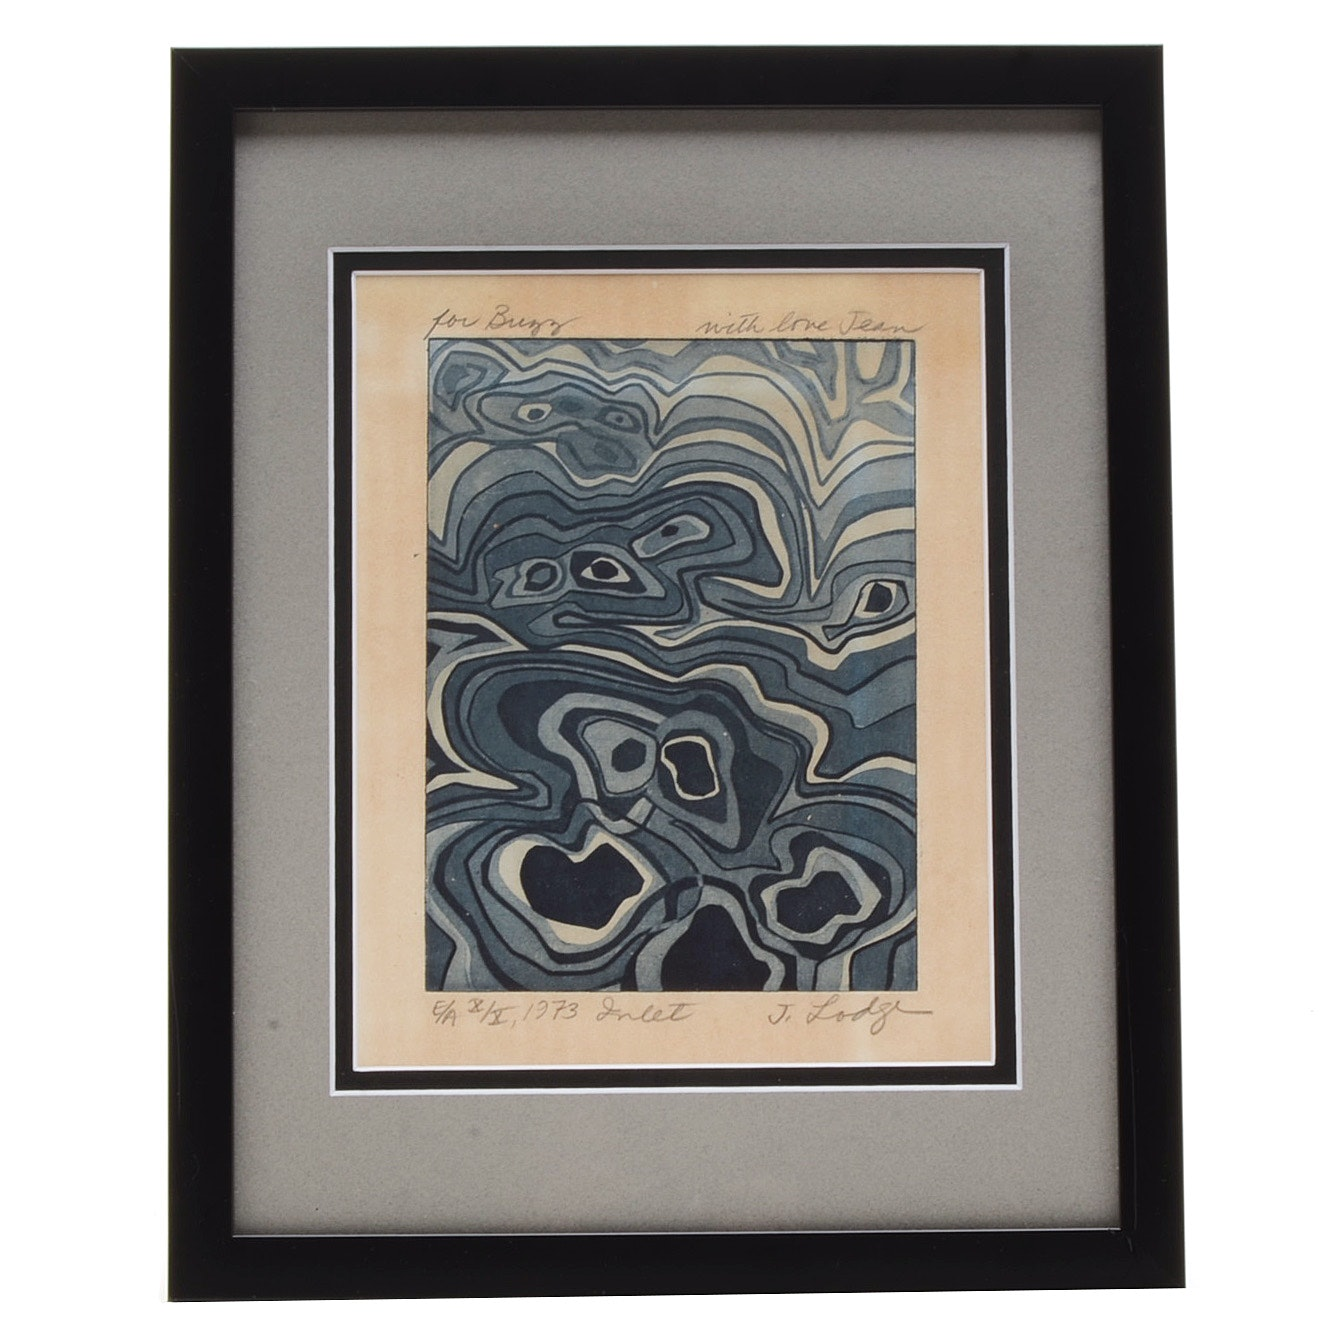 """Jean Lodge 1973 Signed Limited Edition Artist's Proof Aquatint Etching """"Inlet"""""""